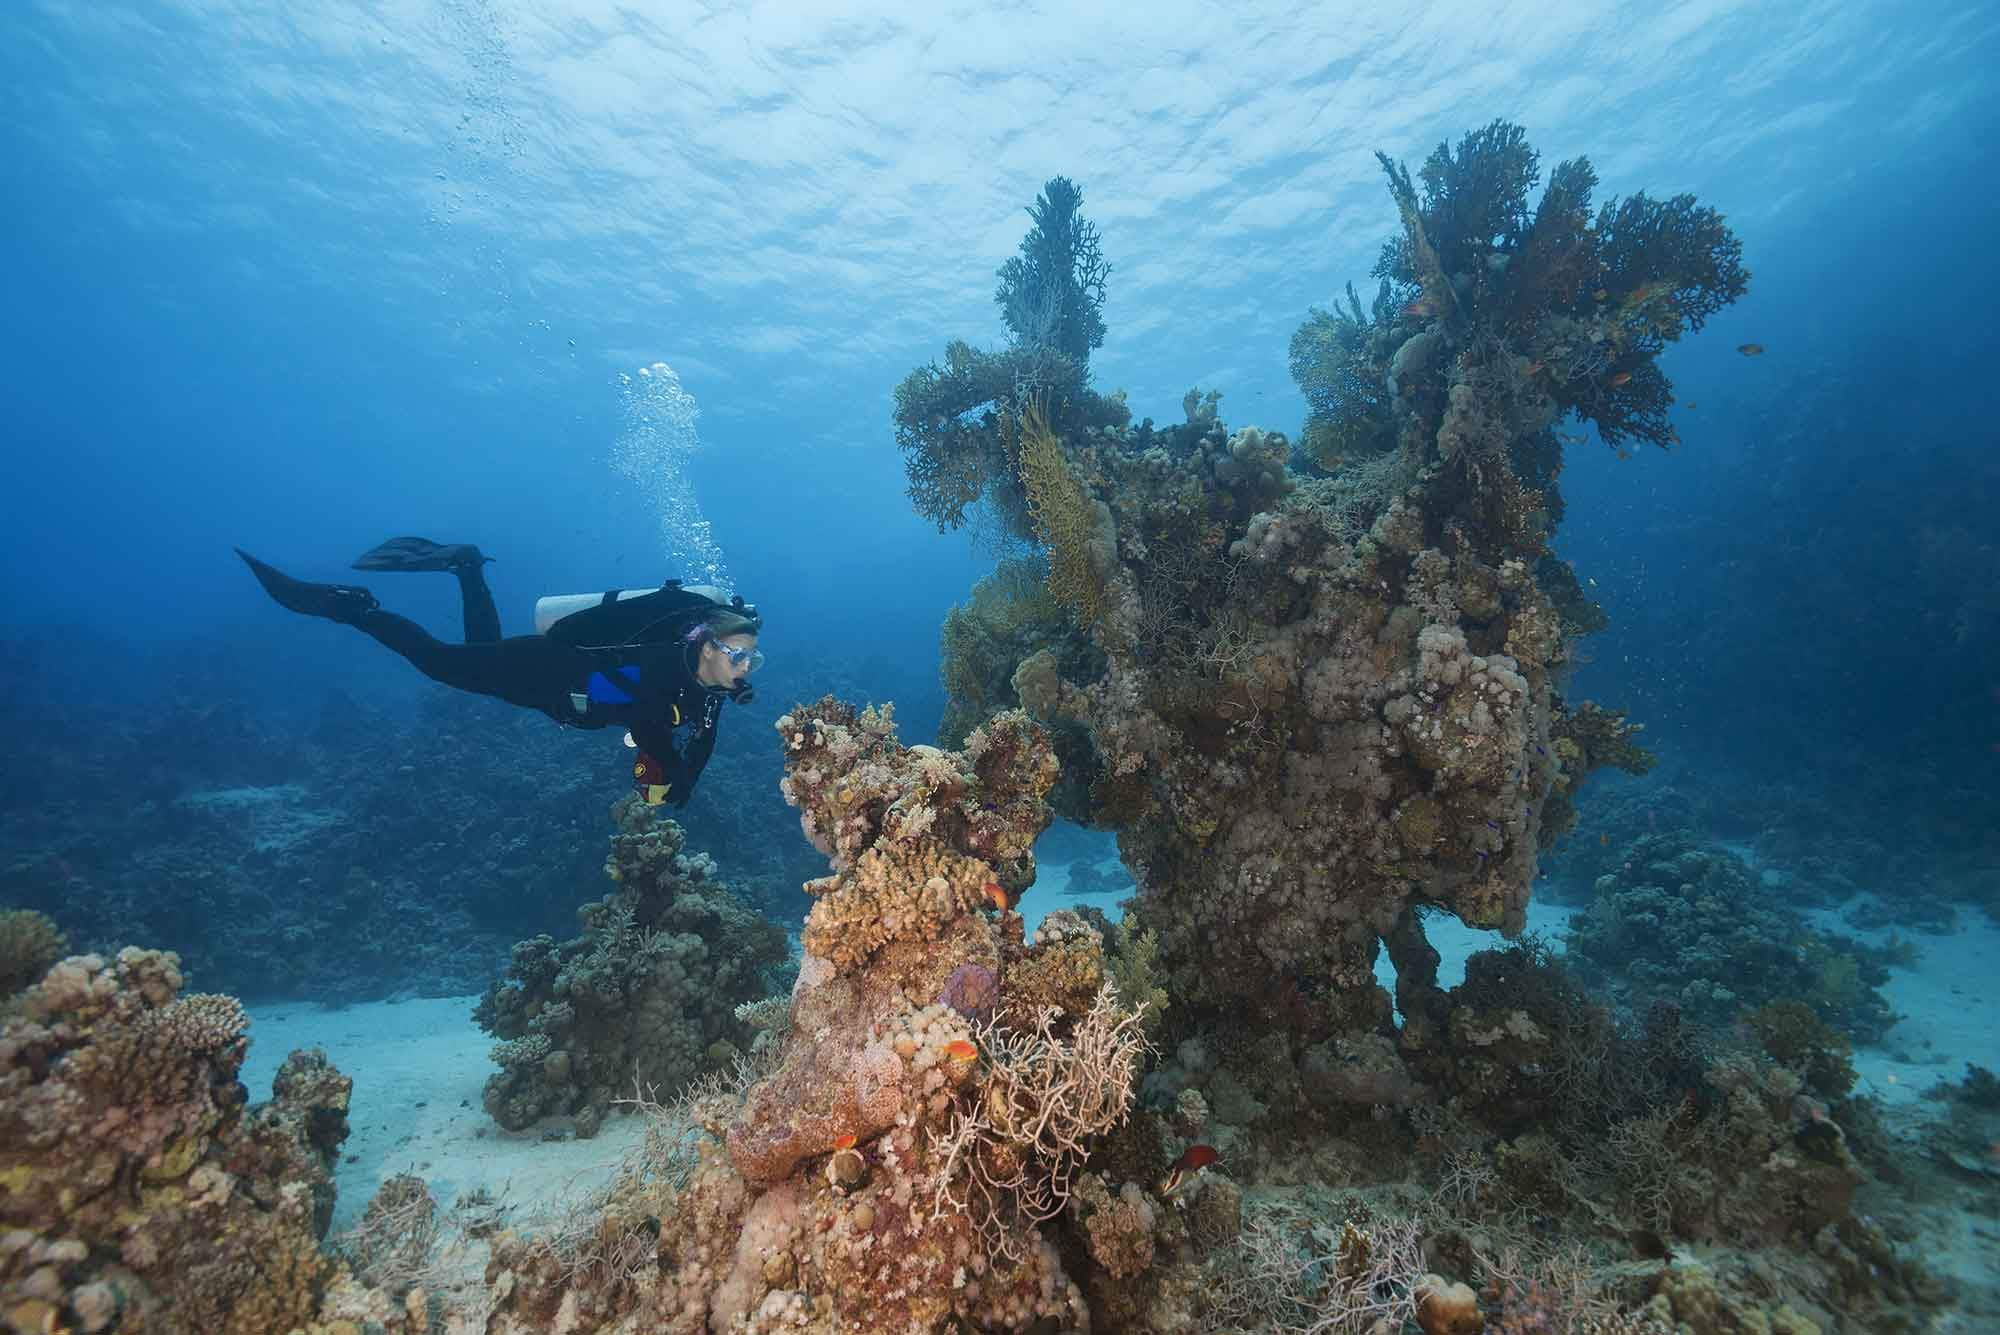 Coral reefs in the Red Sea may save reefs around the world  – here's how you can help